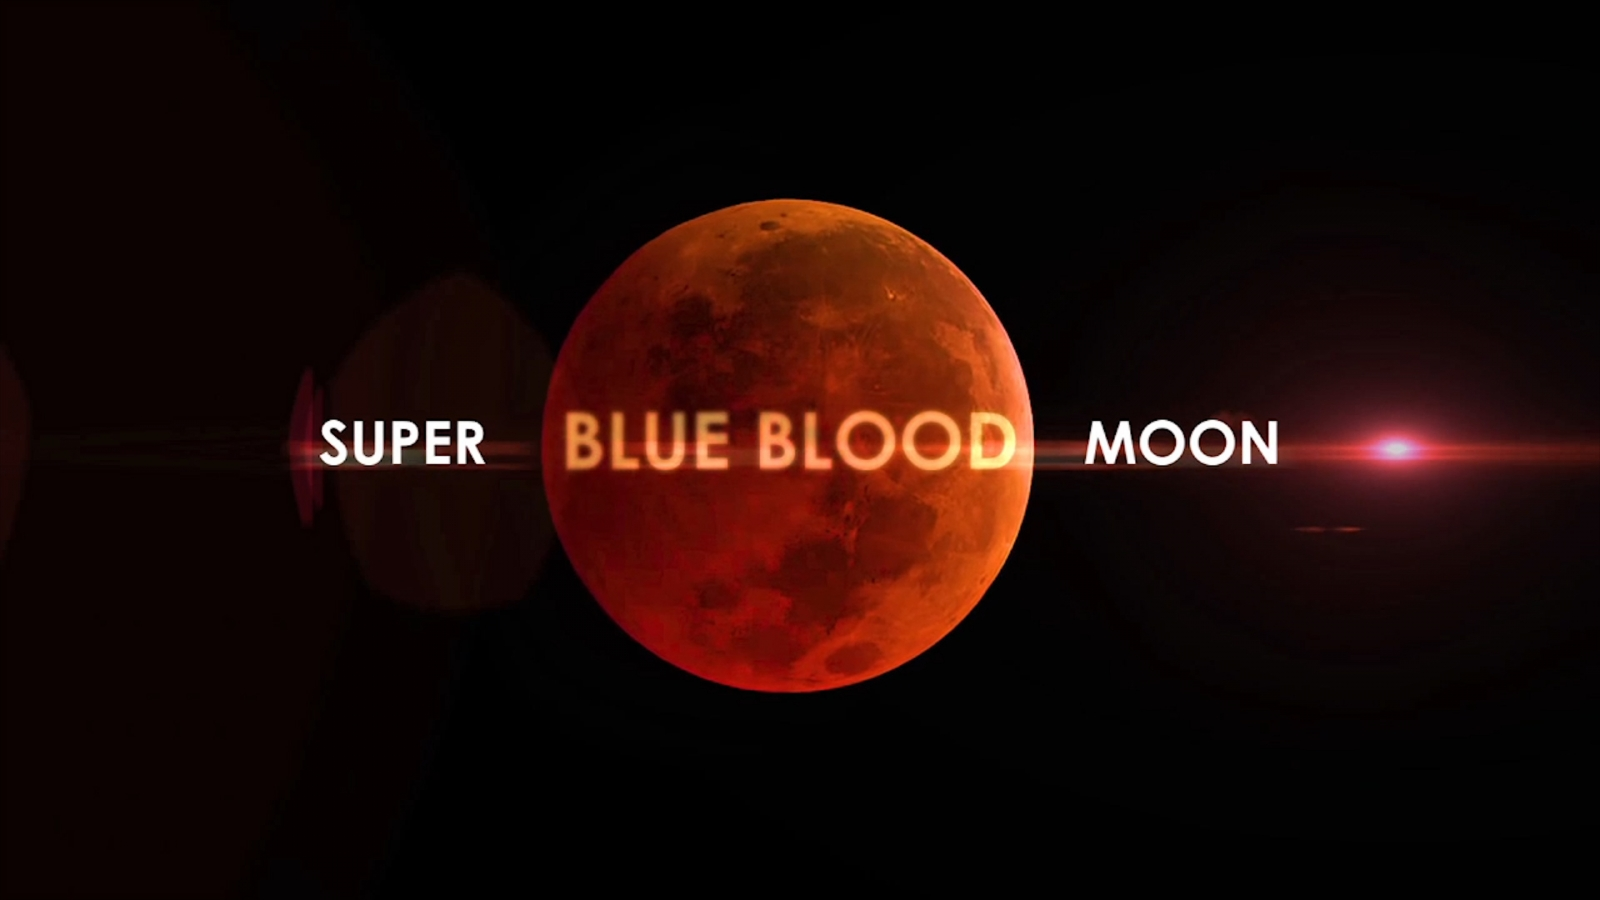 super-blue-blood-moon-and-total-lunar-eclipse-2018-a-rare-phenomena-in-150-years